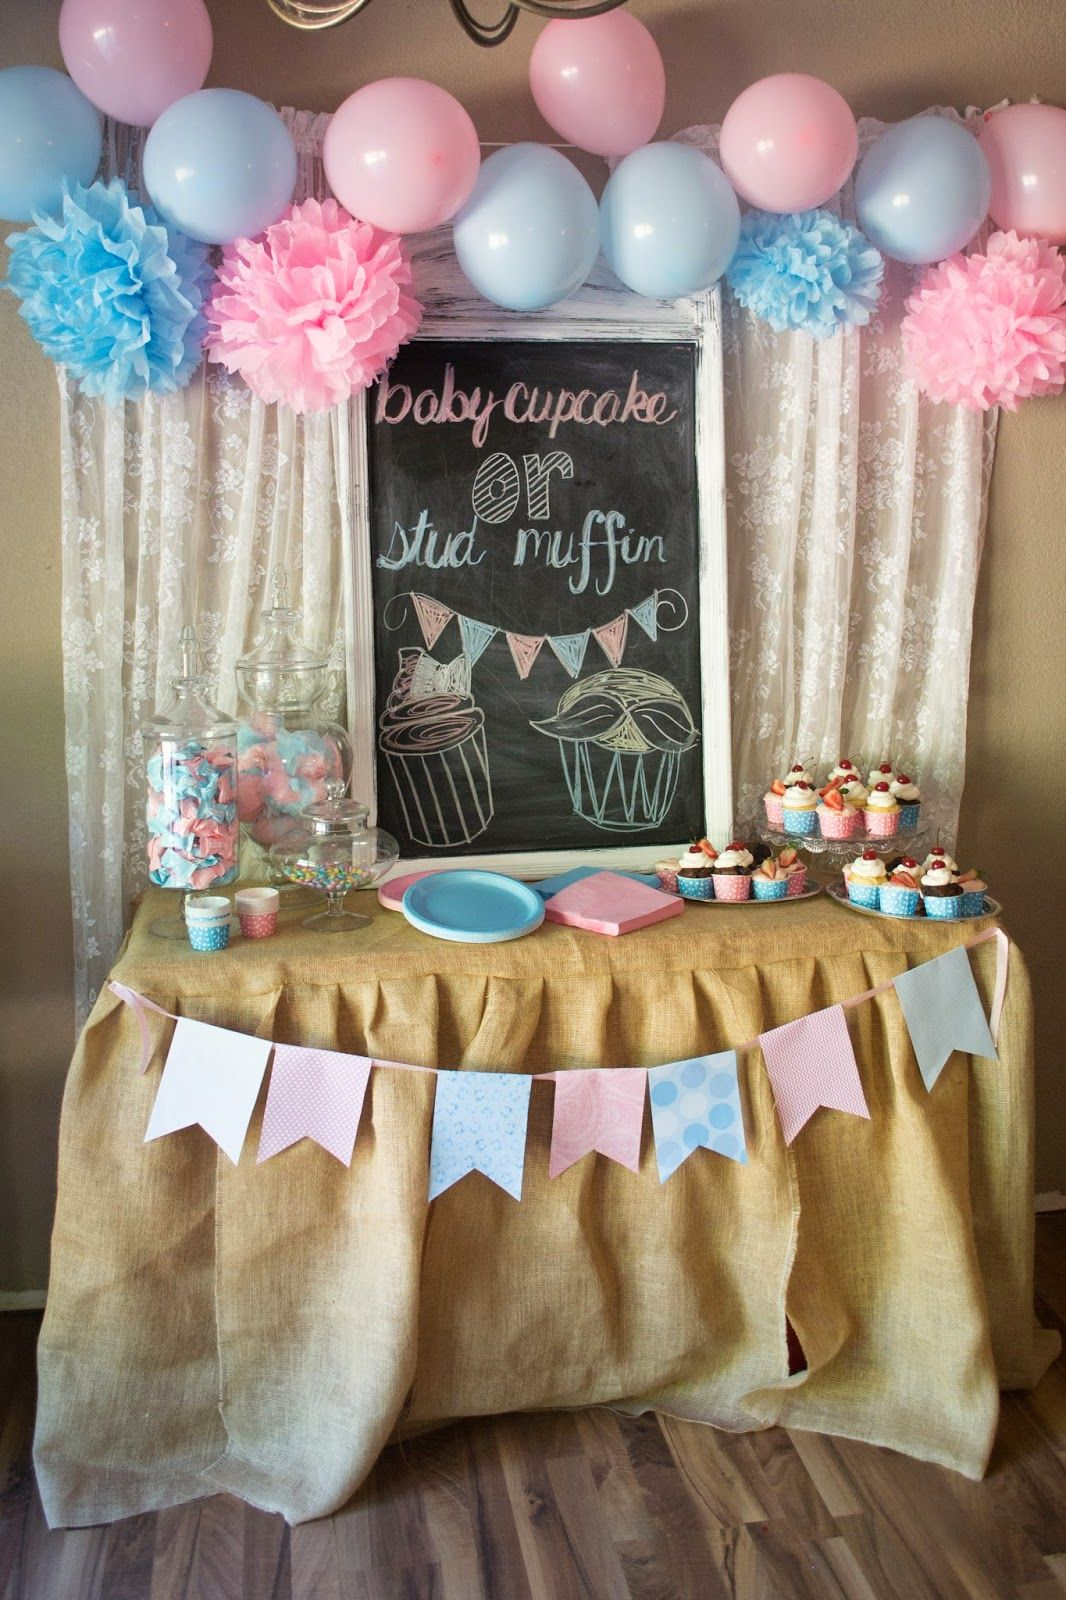 Diy Backdrop Stand For Dessert Table Foster Creativity Gender Reveal Dessert Table Birthday